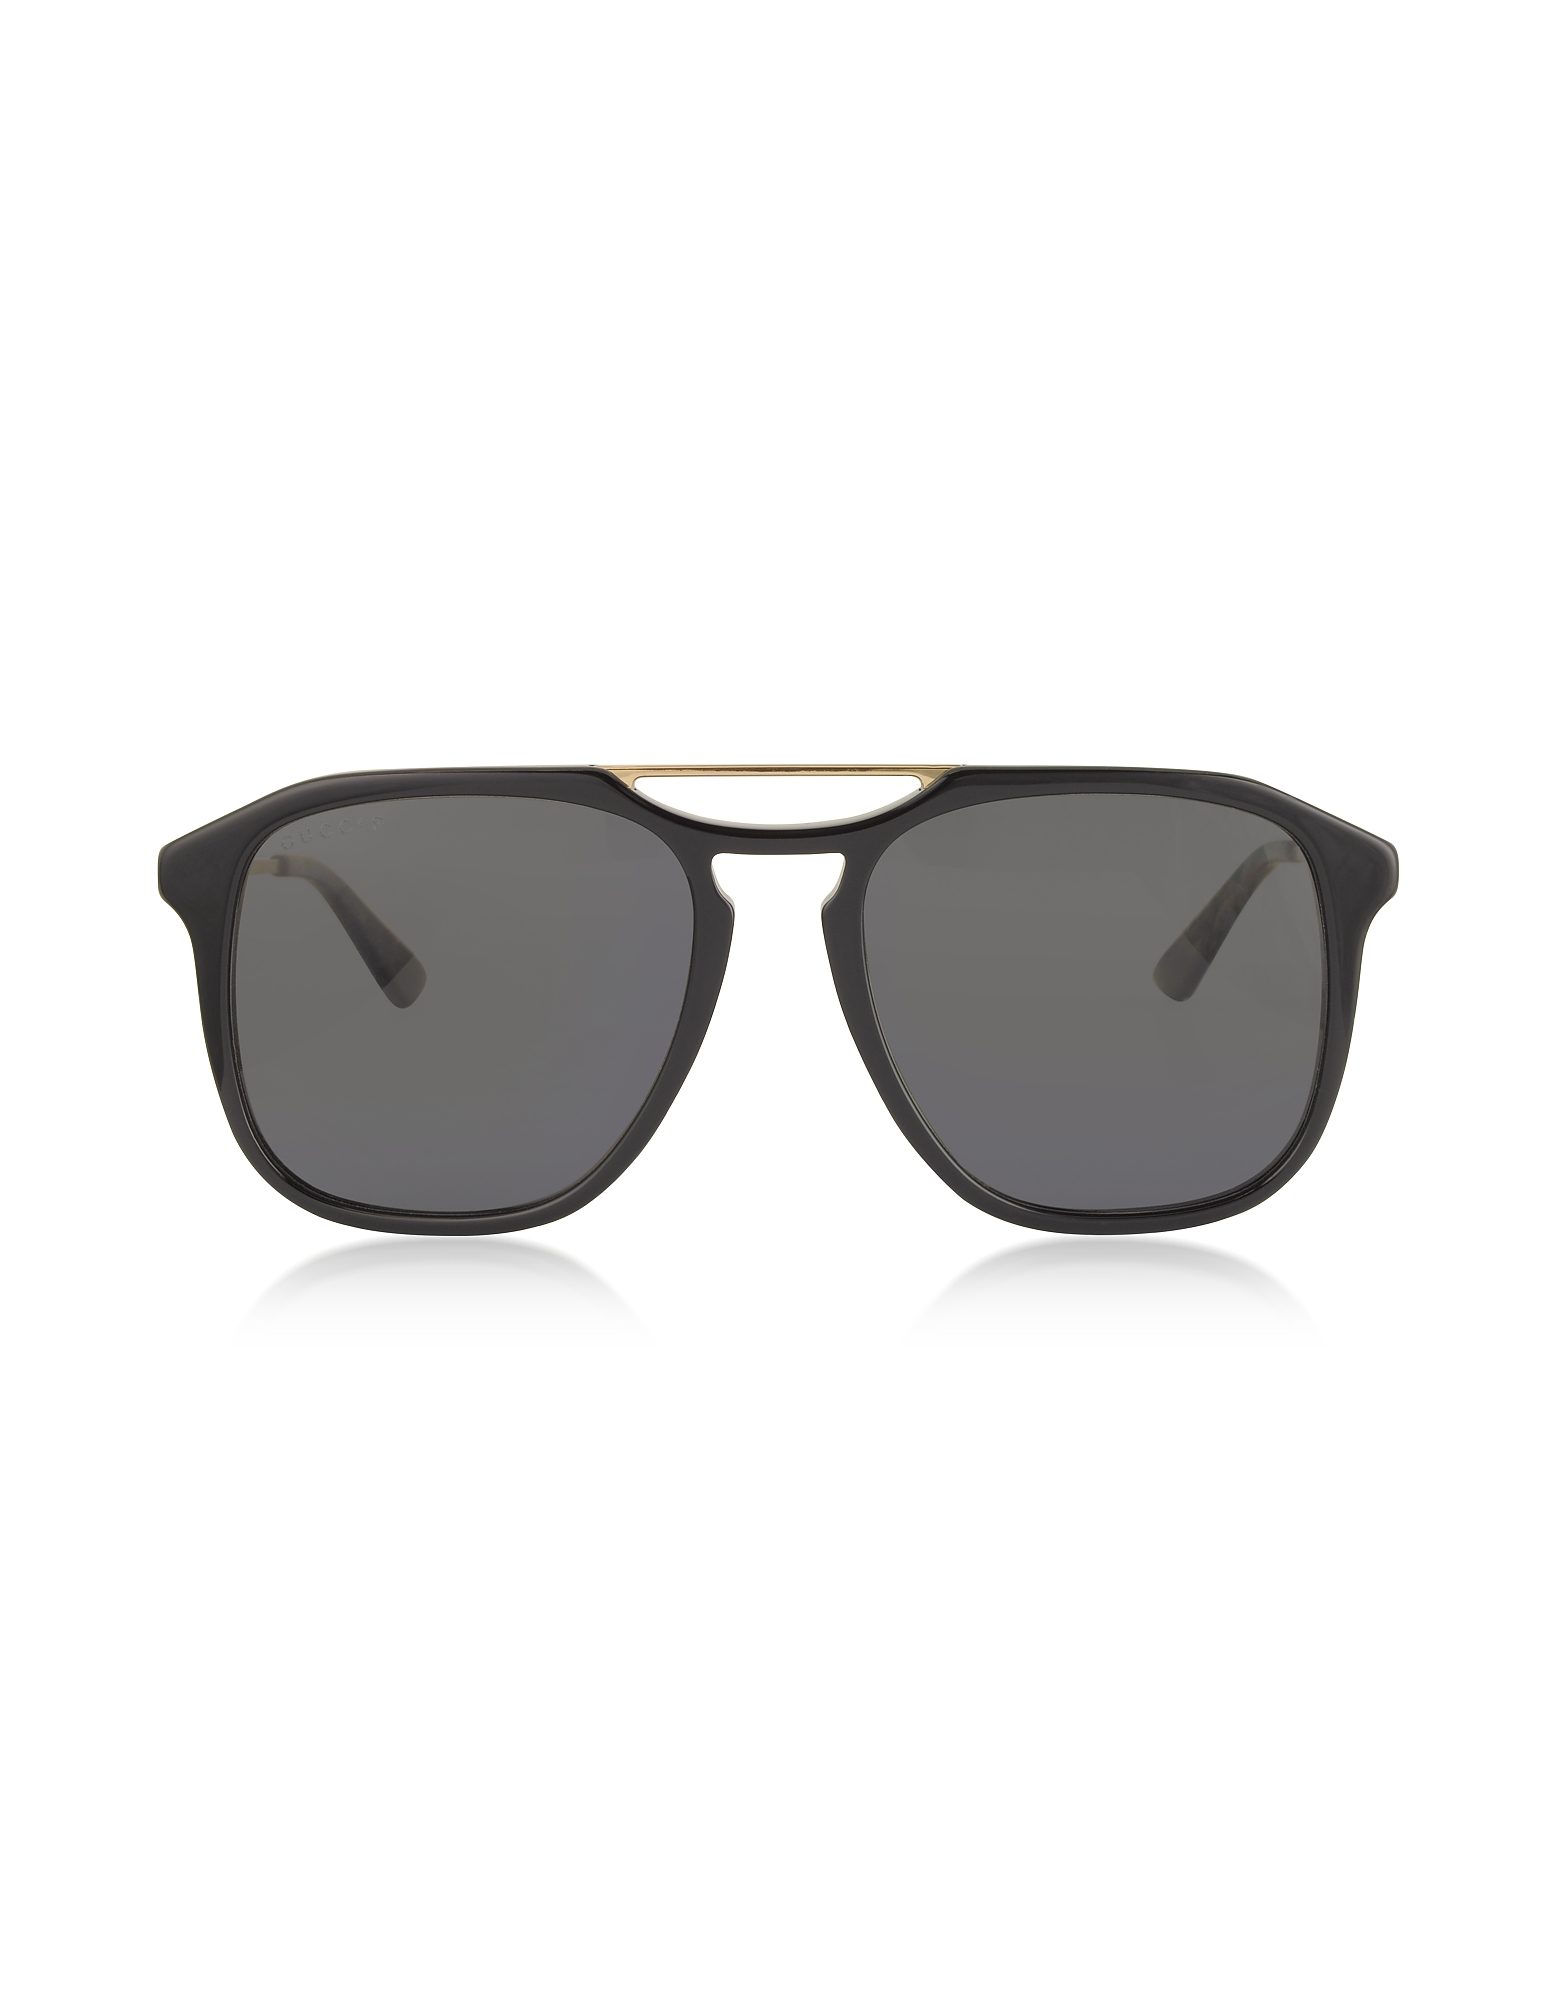 Gucci Designer Sunglasses, Square-frame Acetate Sunglasses